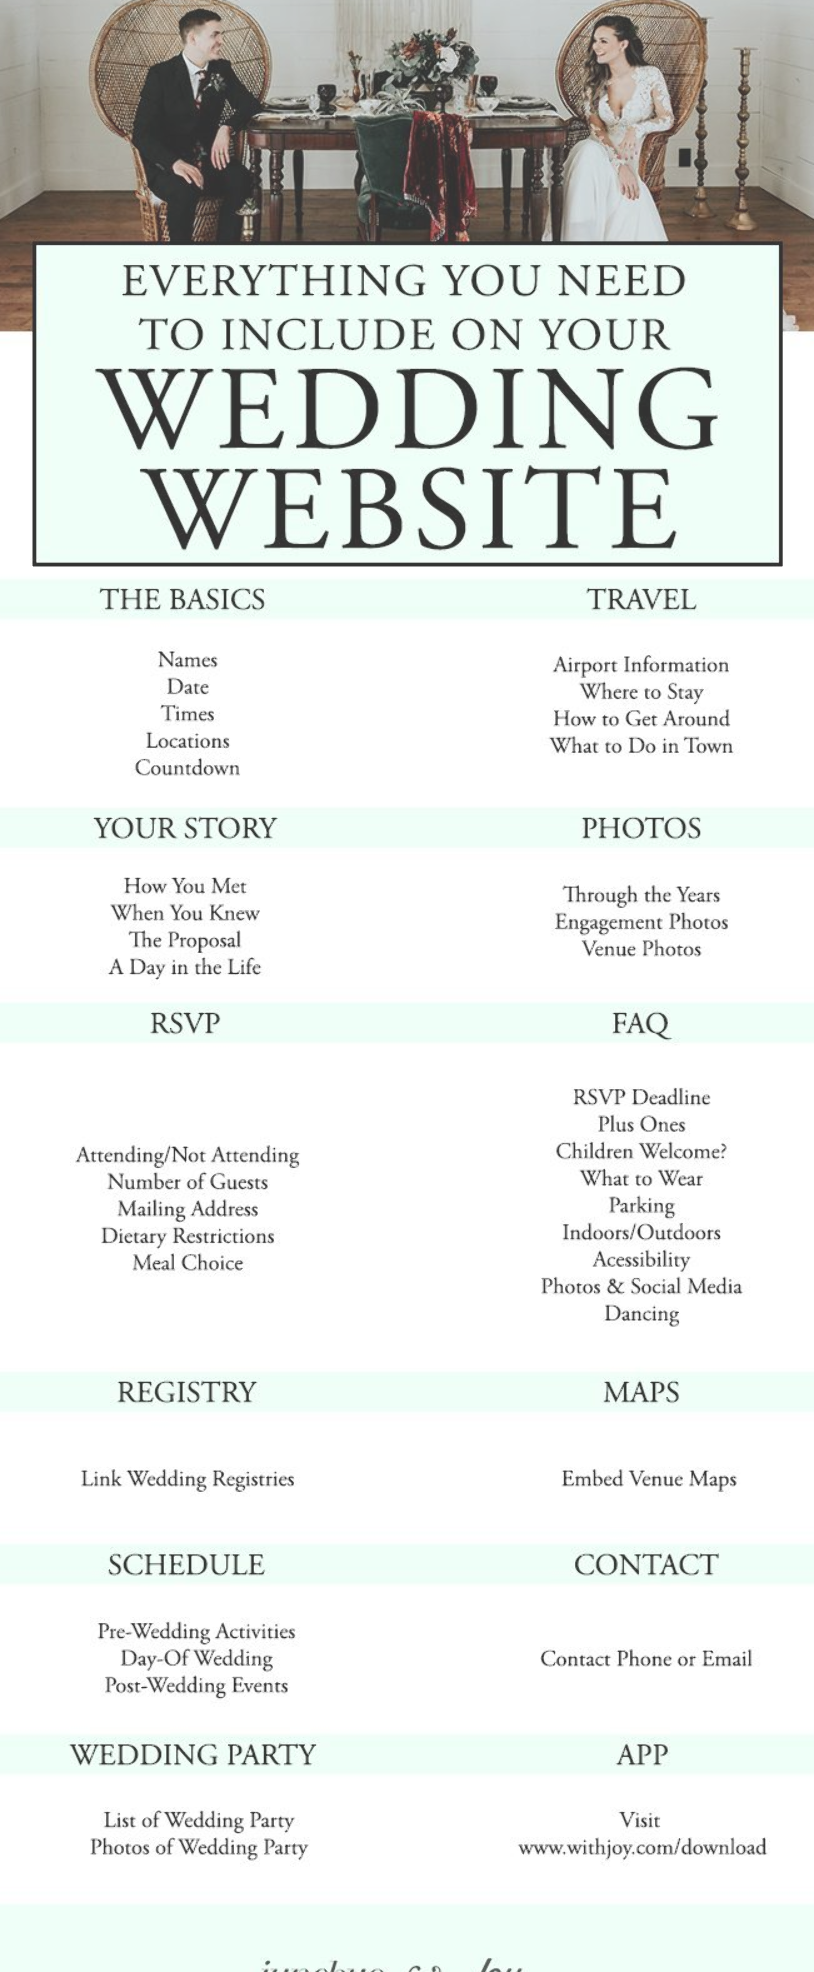 The Best Wedding Planning Tools for a StressFree